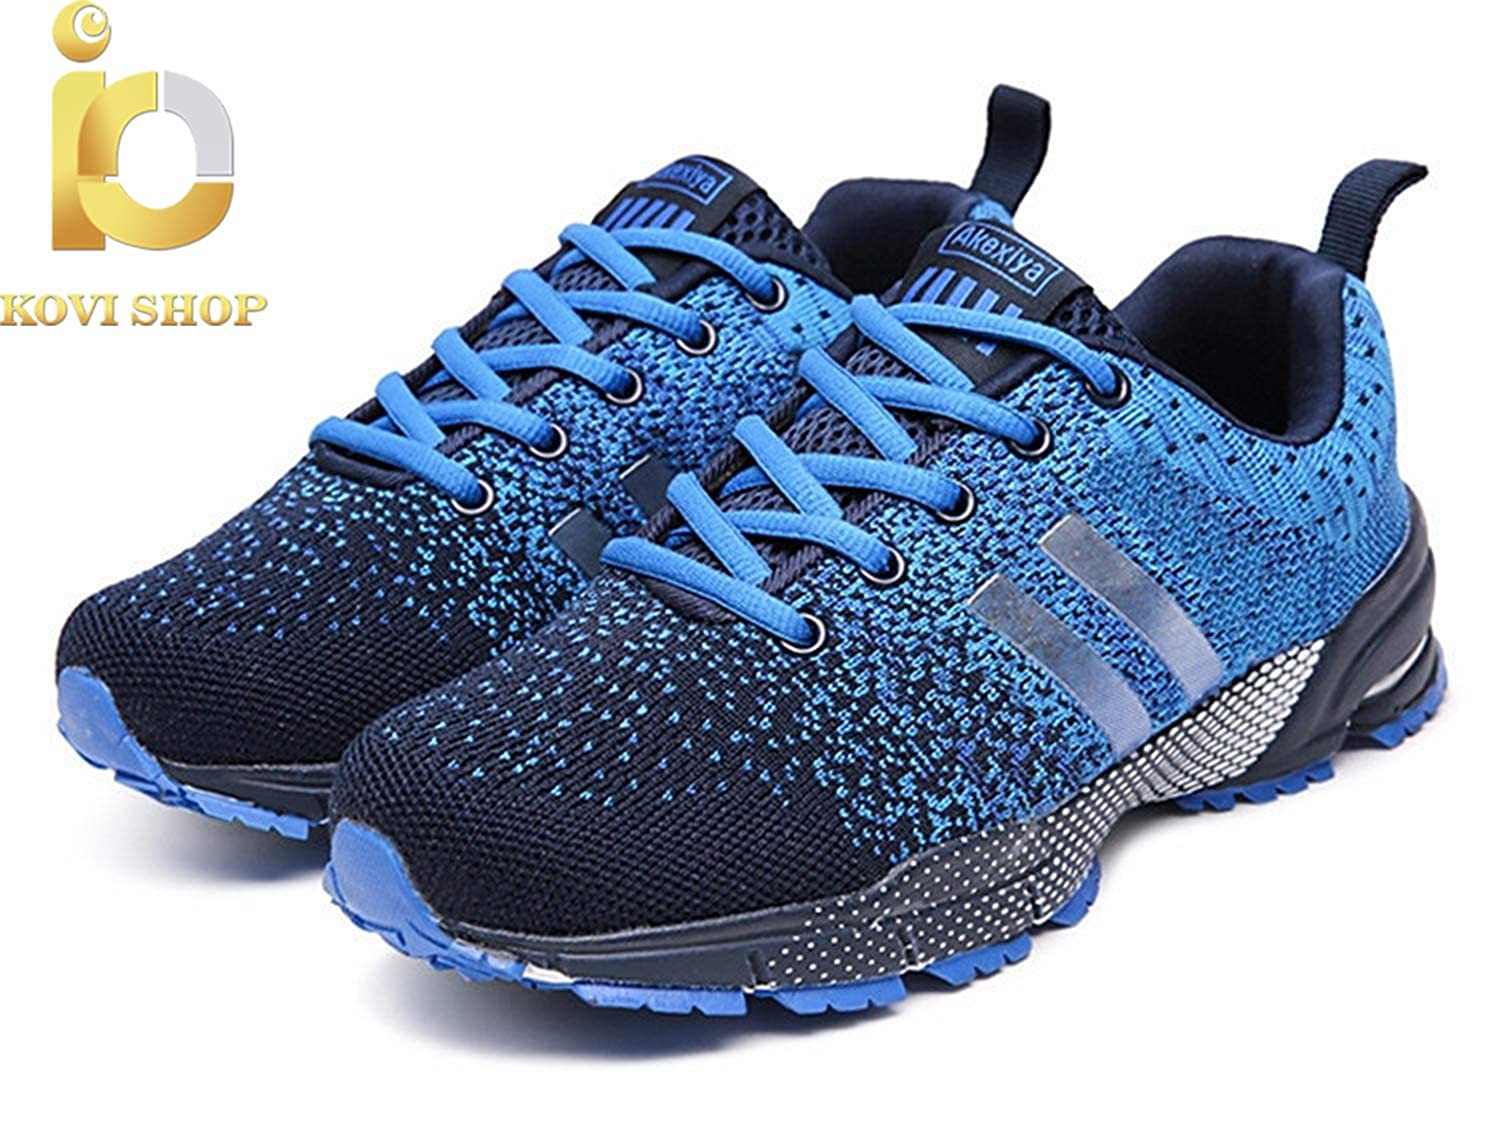 KoviShop Breathable Light Fashion Sneaker